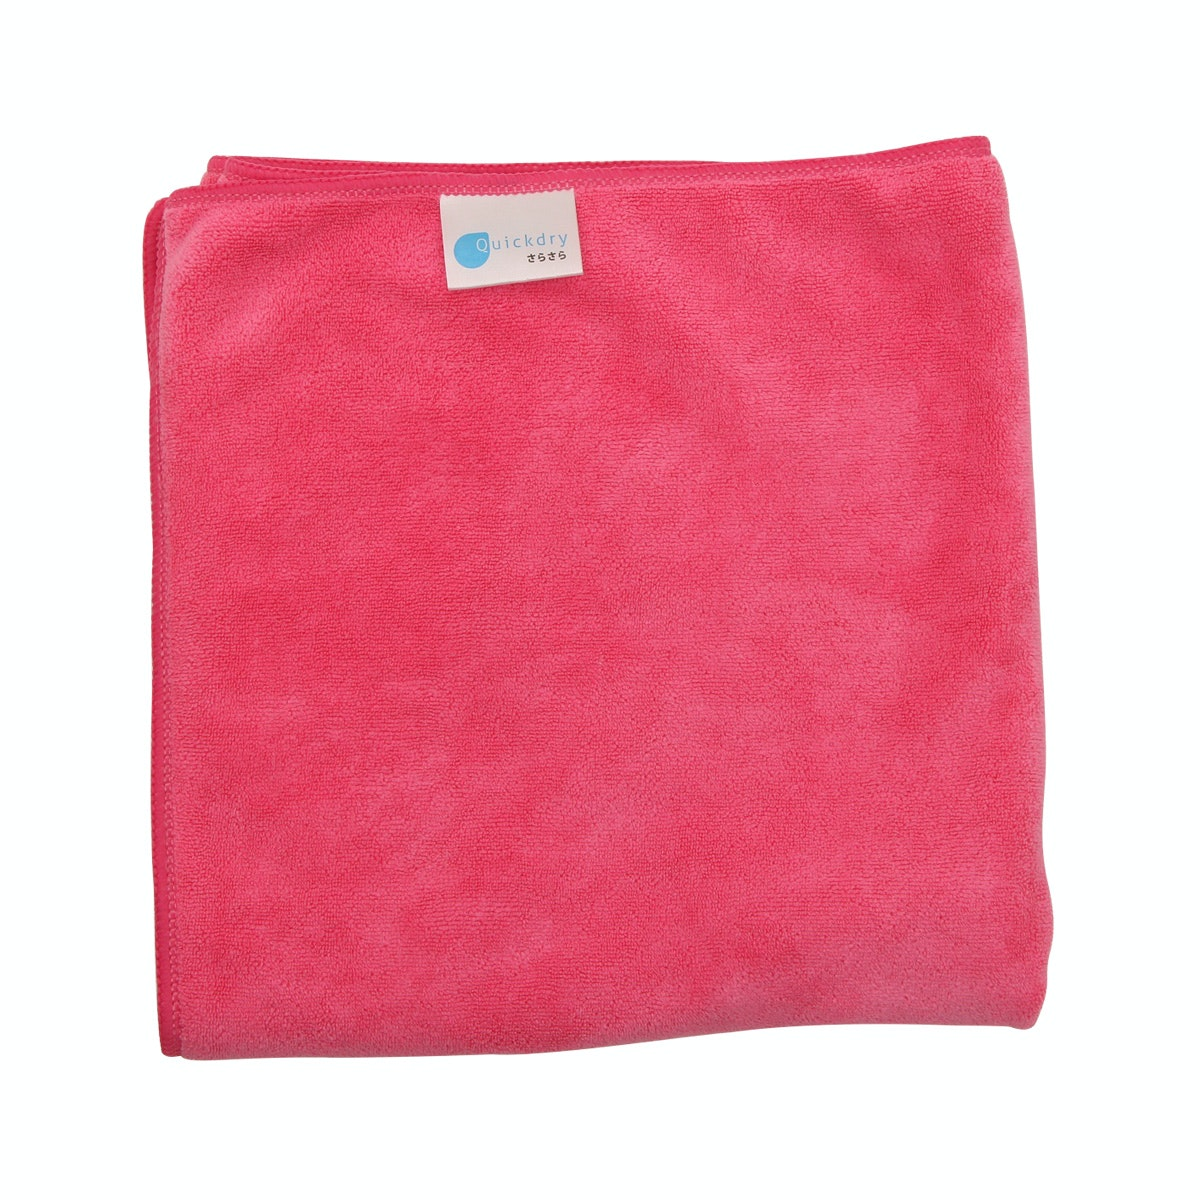 Quickdry Handuk Travel Pink